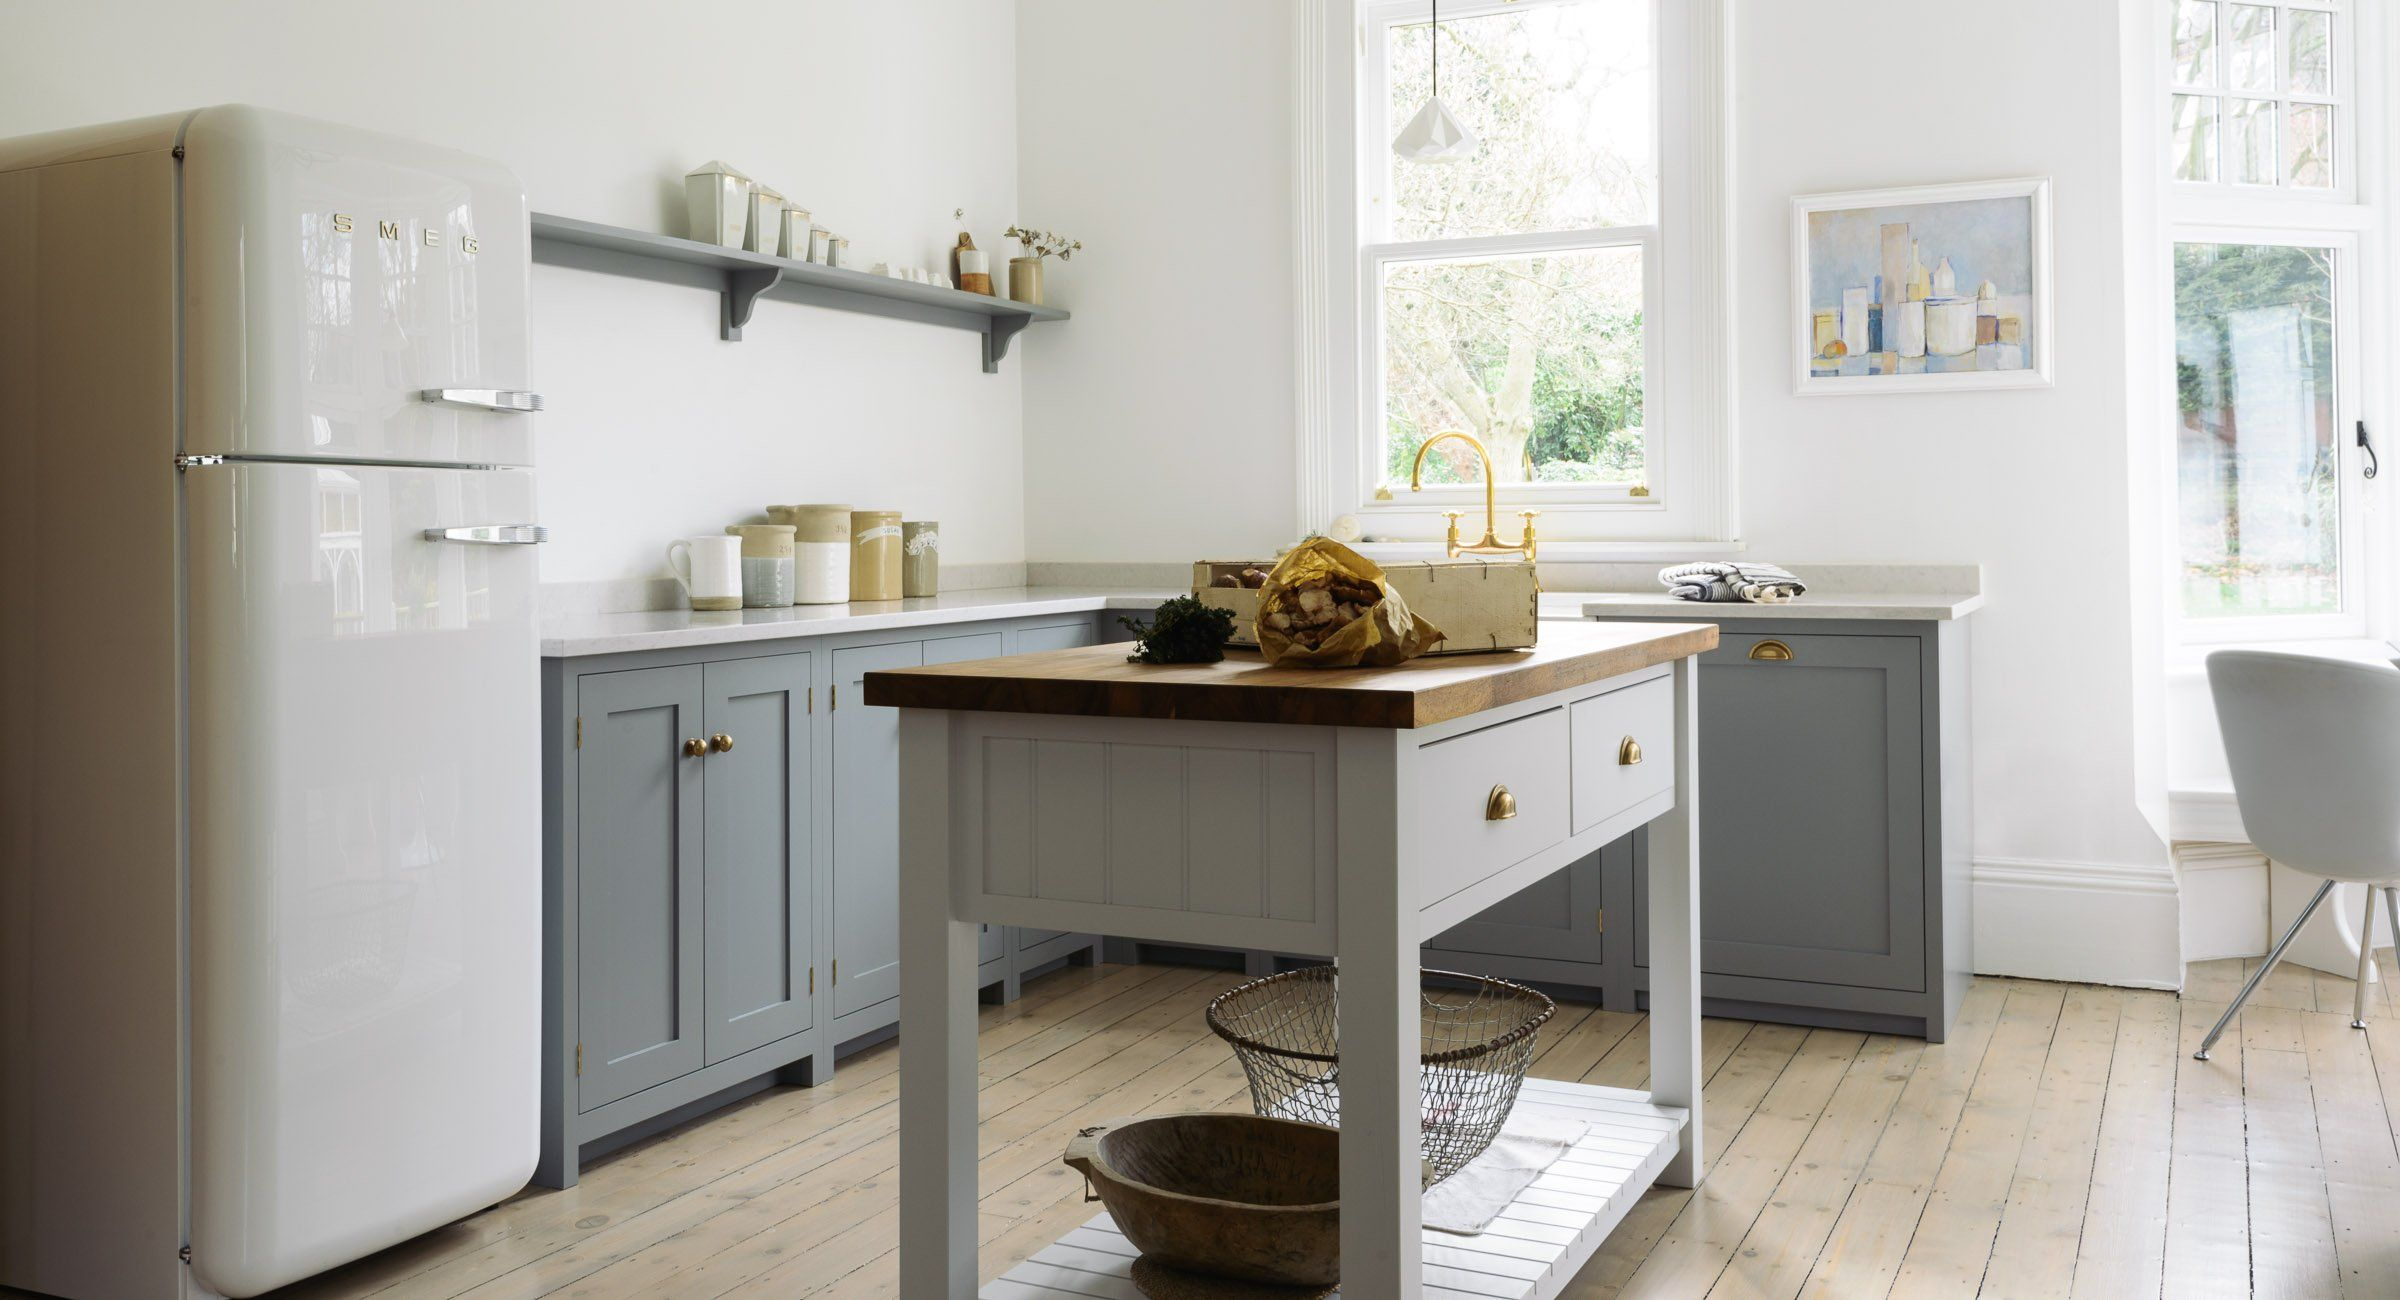 Kitchen Ideas Nottingham park kitchen nottinghamdevol kitchens | shaker cabinets, smeg